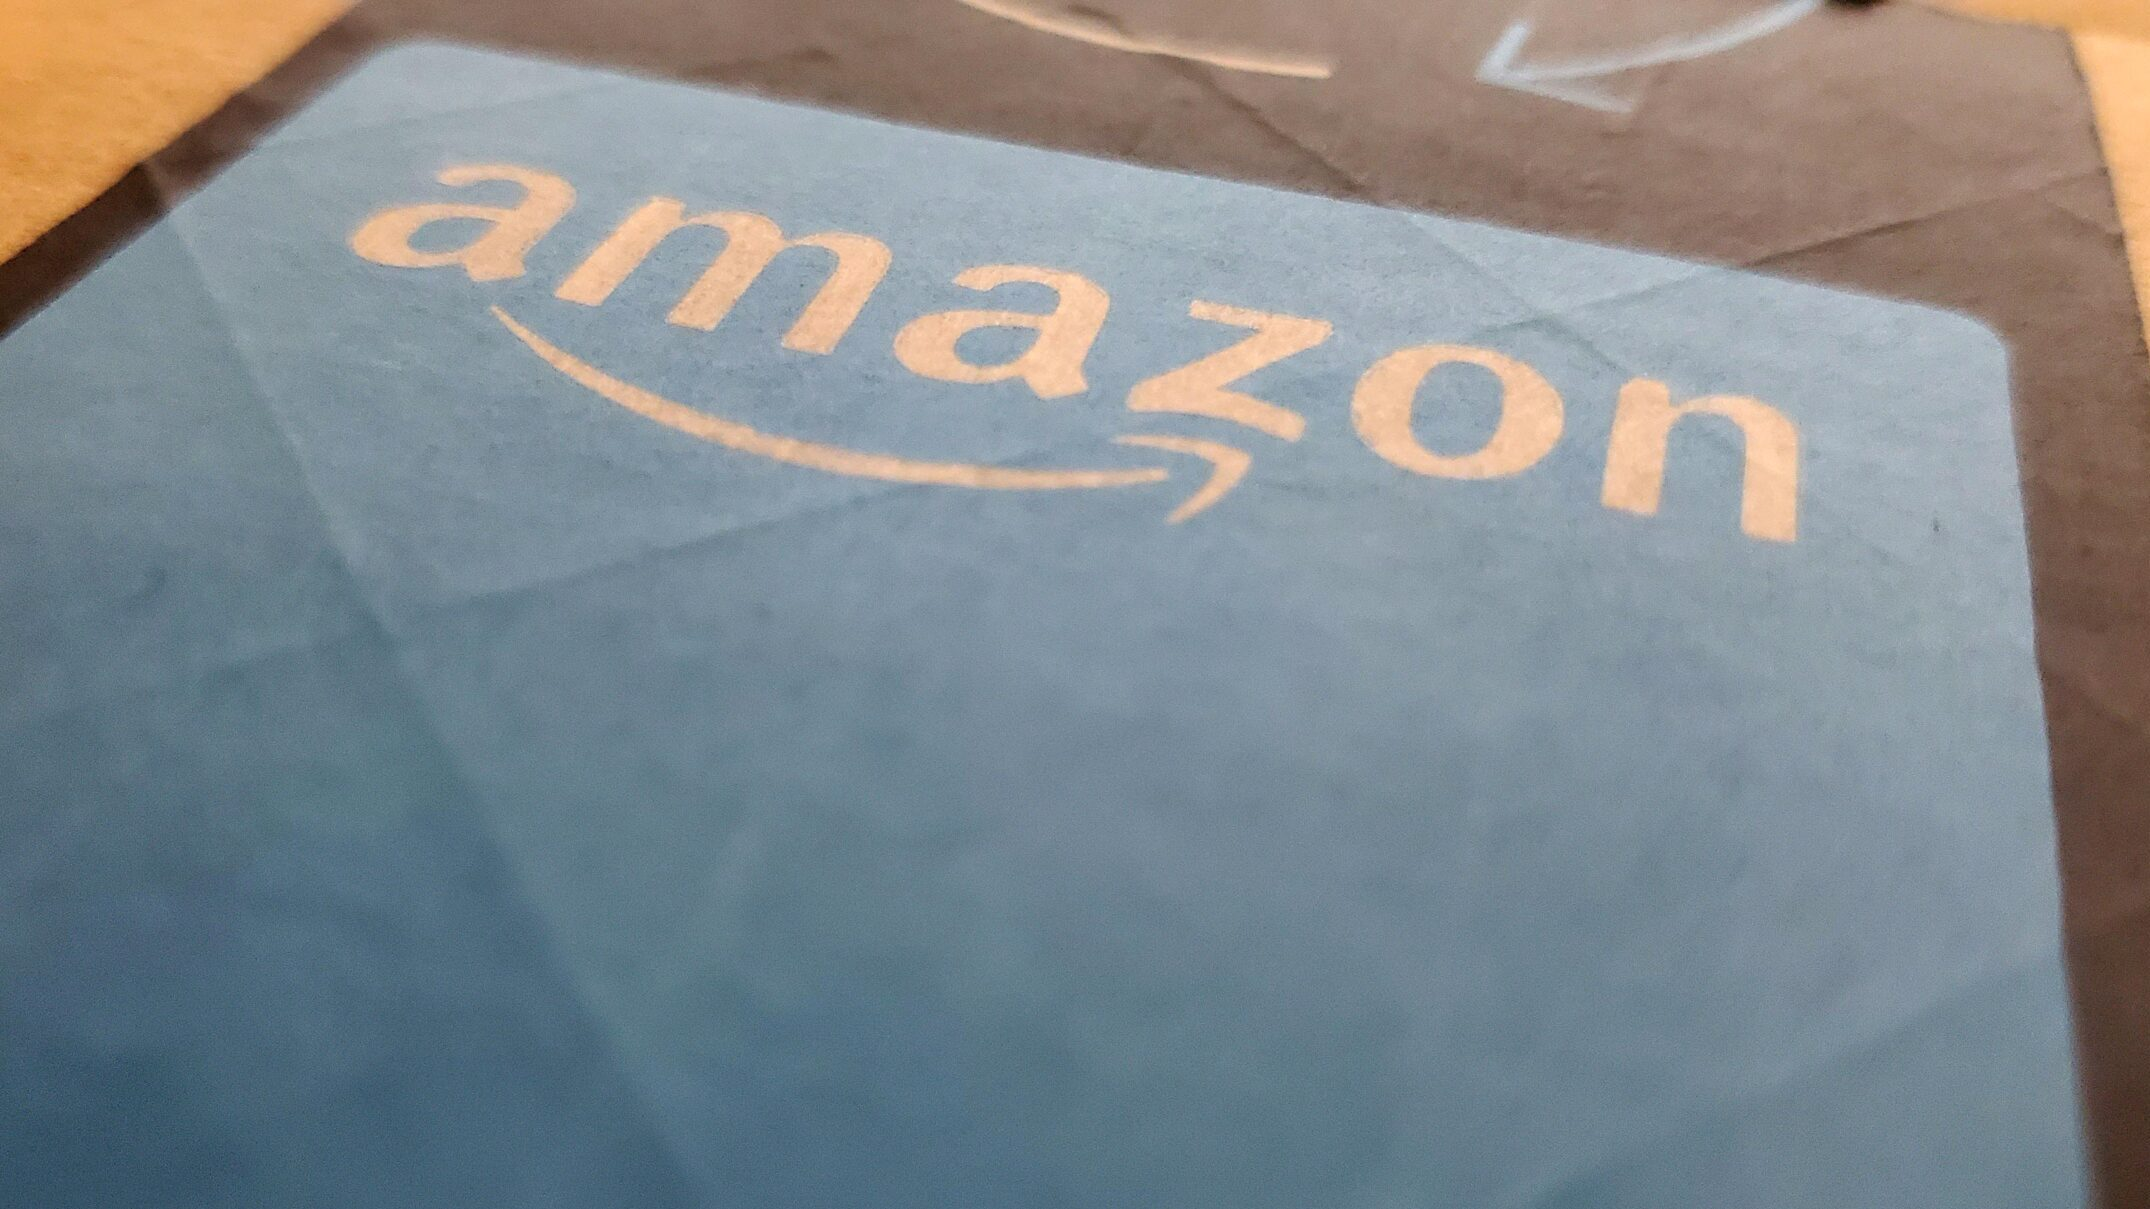 Amazon Expands while Congress Makes Postal Service Fund Retiree Benefits 75 Years in Advance